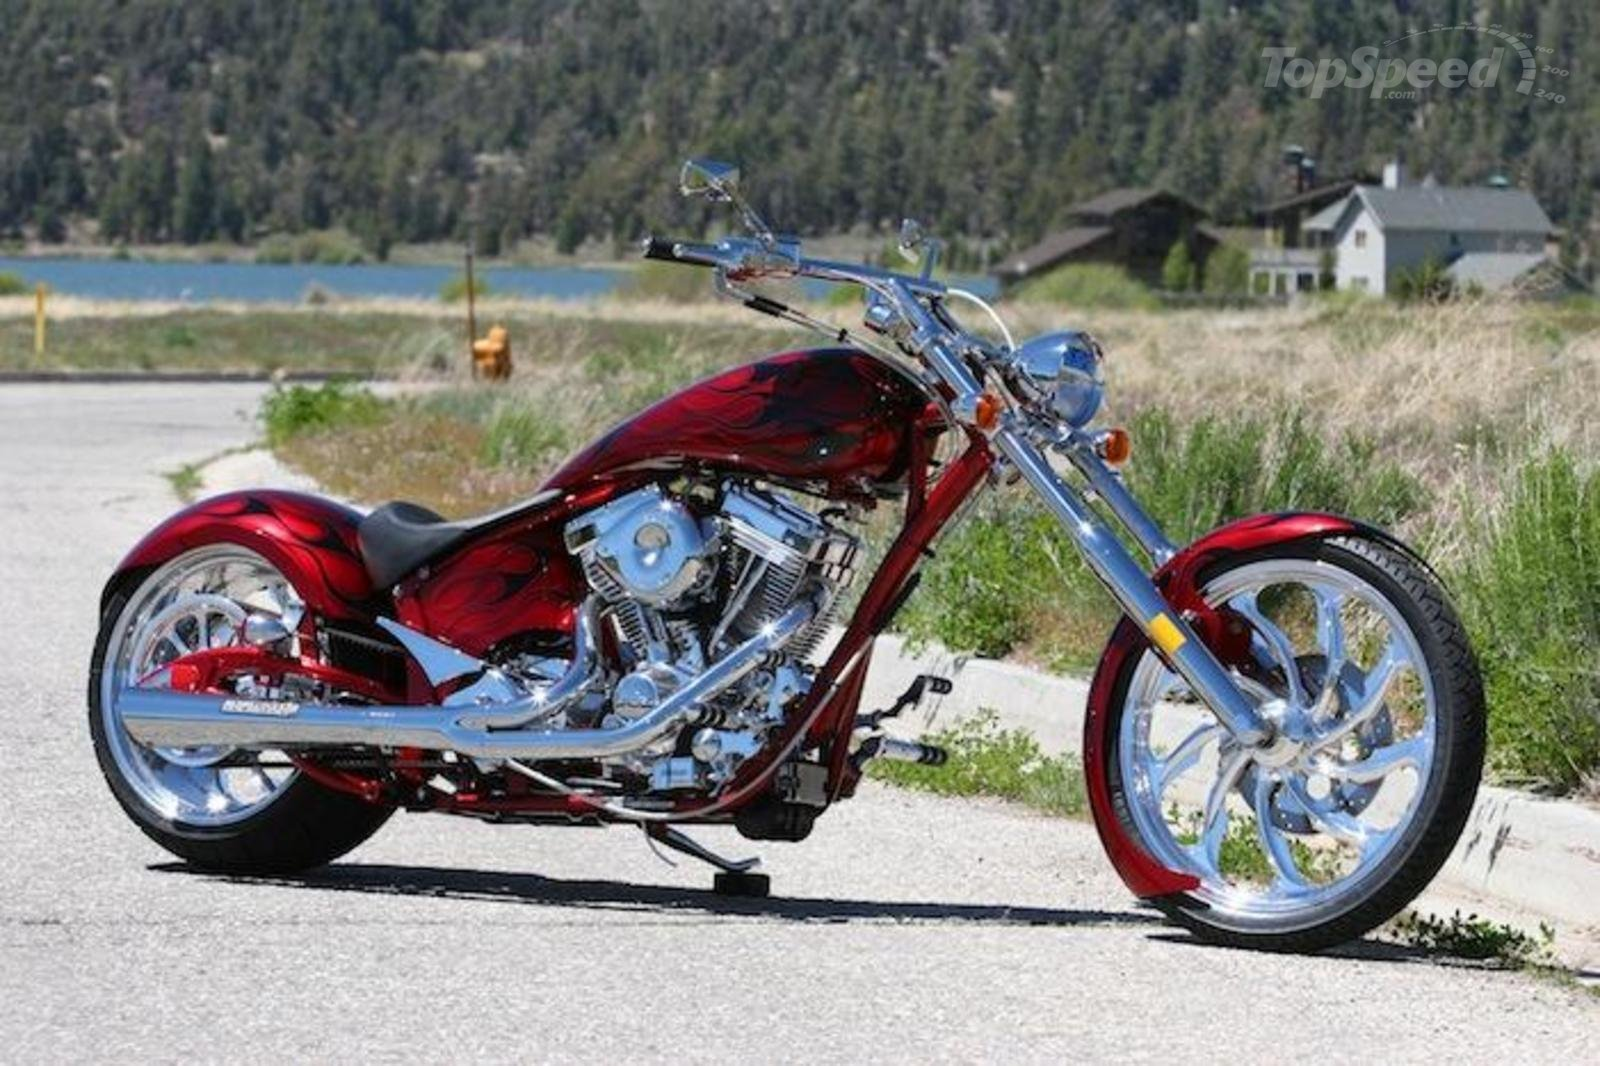 Big Bear Choppers Motorcycles For Sale 26 Used Motorcycles ...   Big Bear Choppers